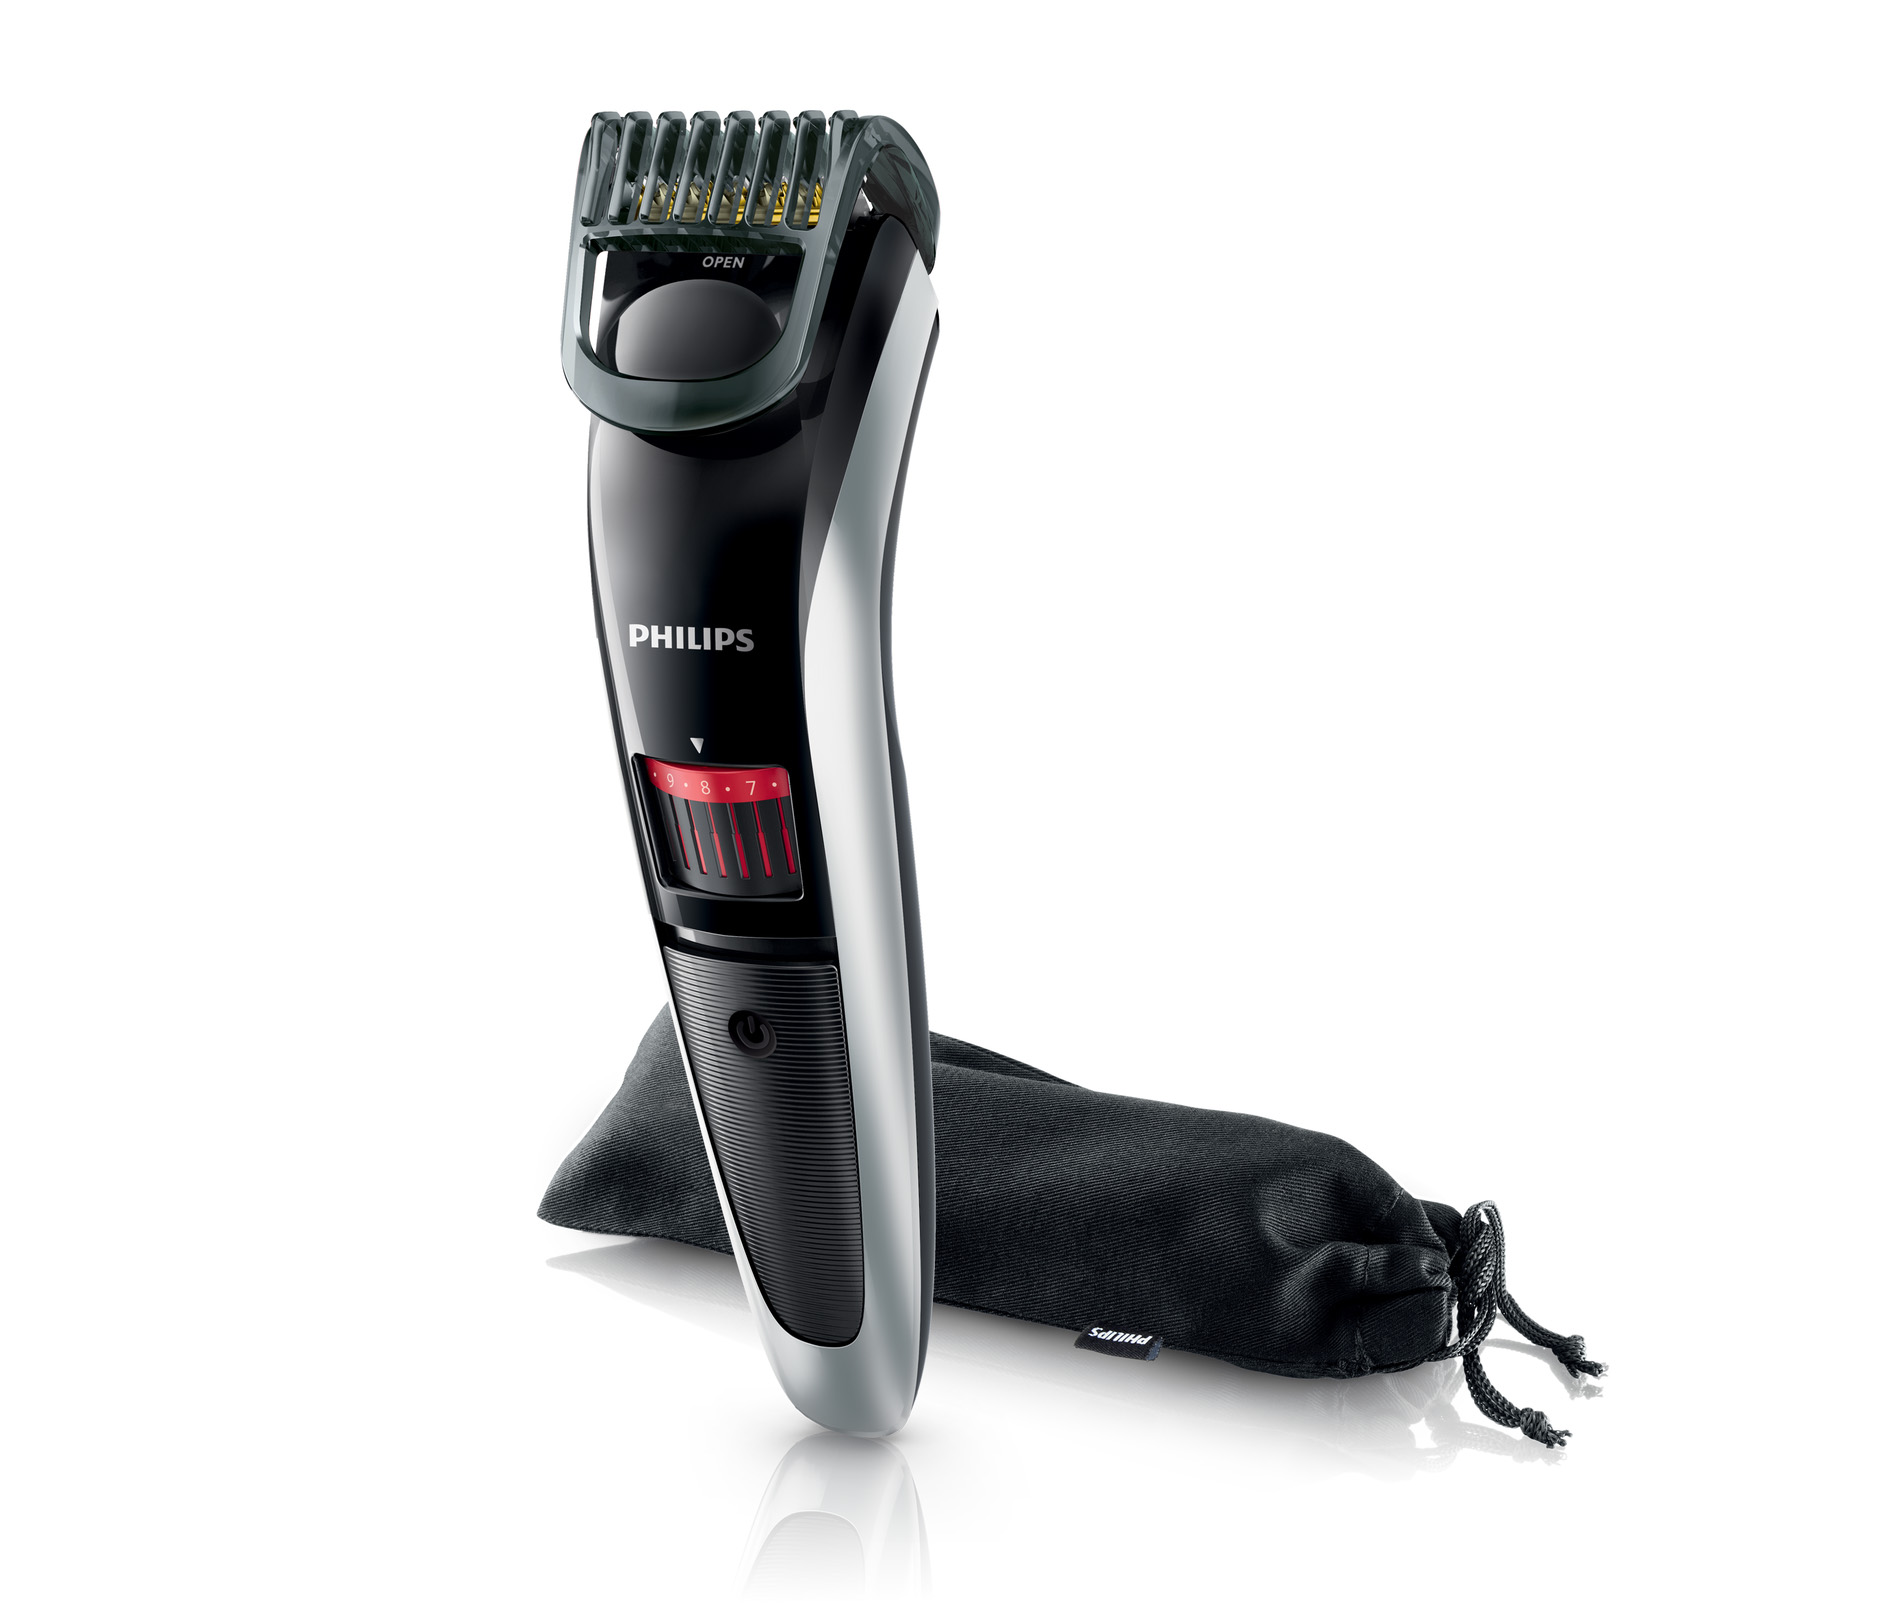 philips beardtrimmer series 3000 beard trimmer titanium blade cordless qt4013 23 ebay. Black Bedroom Furniture Sets. Home Design Ideas